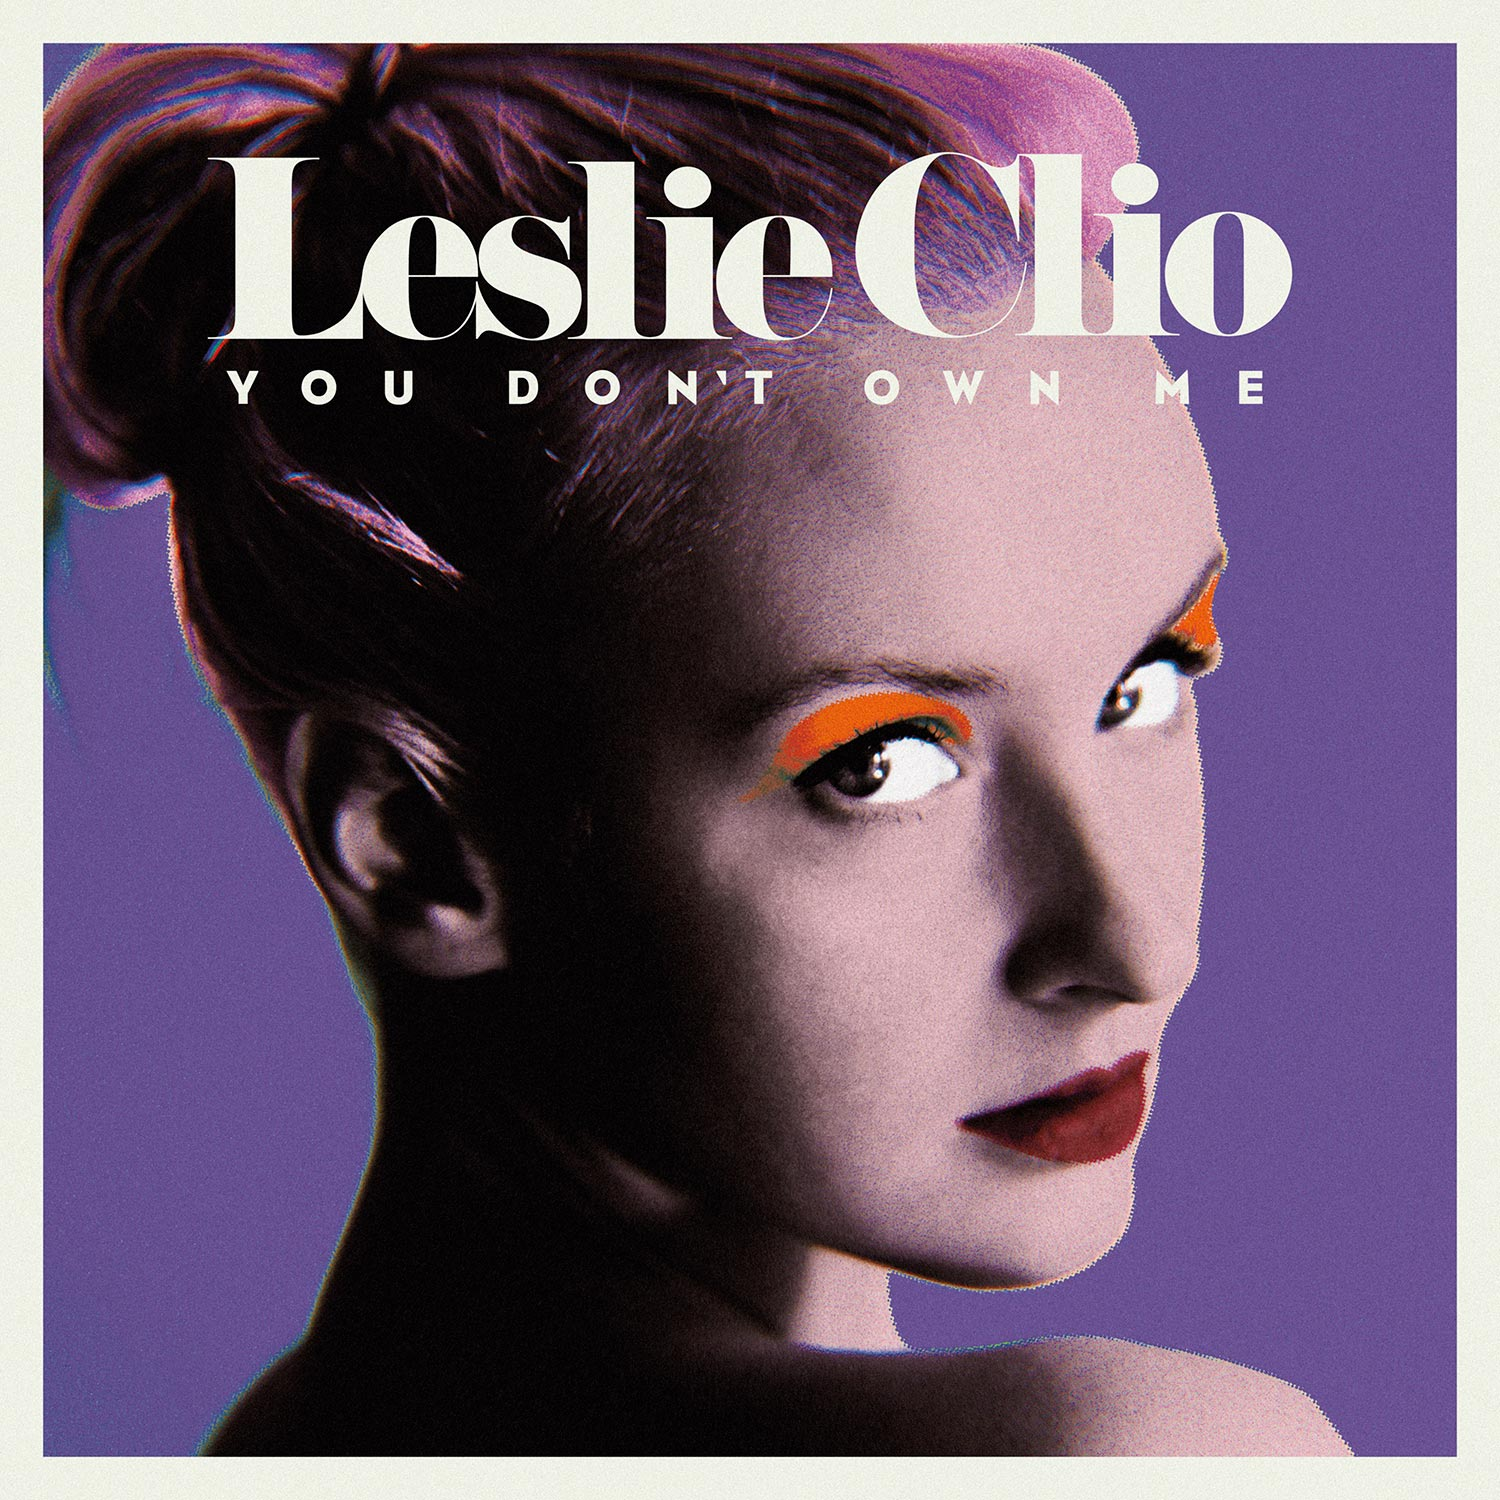 leslie-clio-repeat-by-rocketandwink (6)